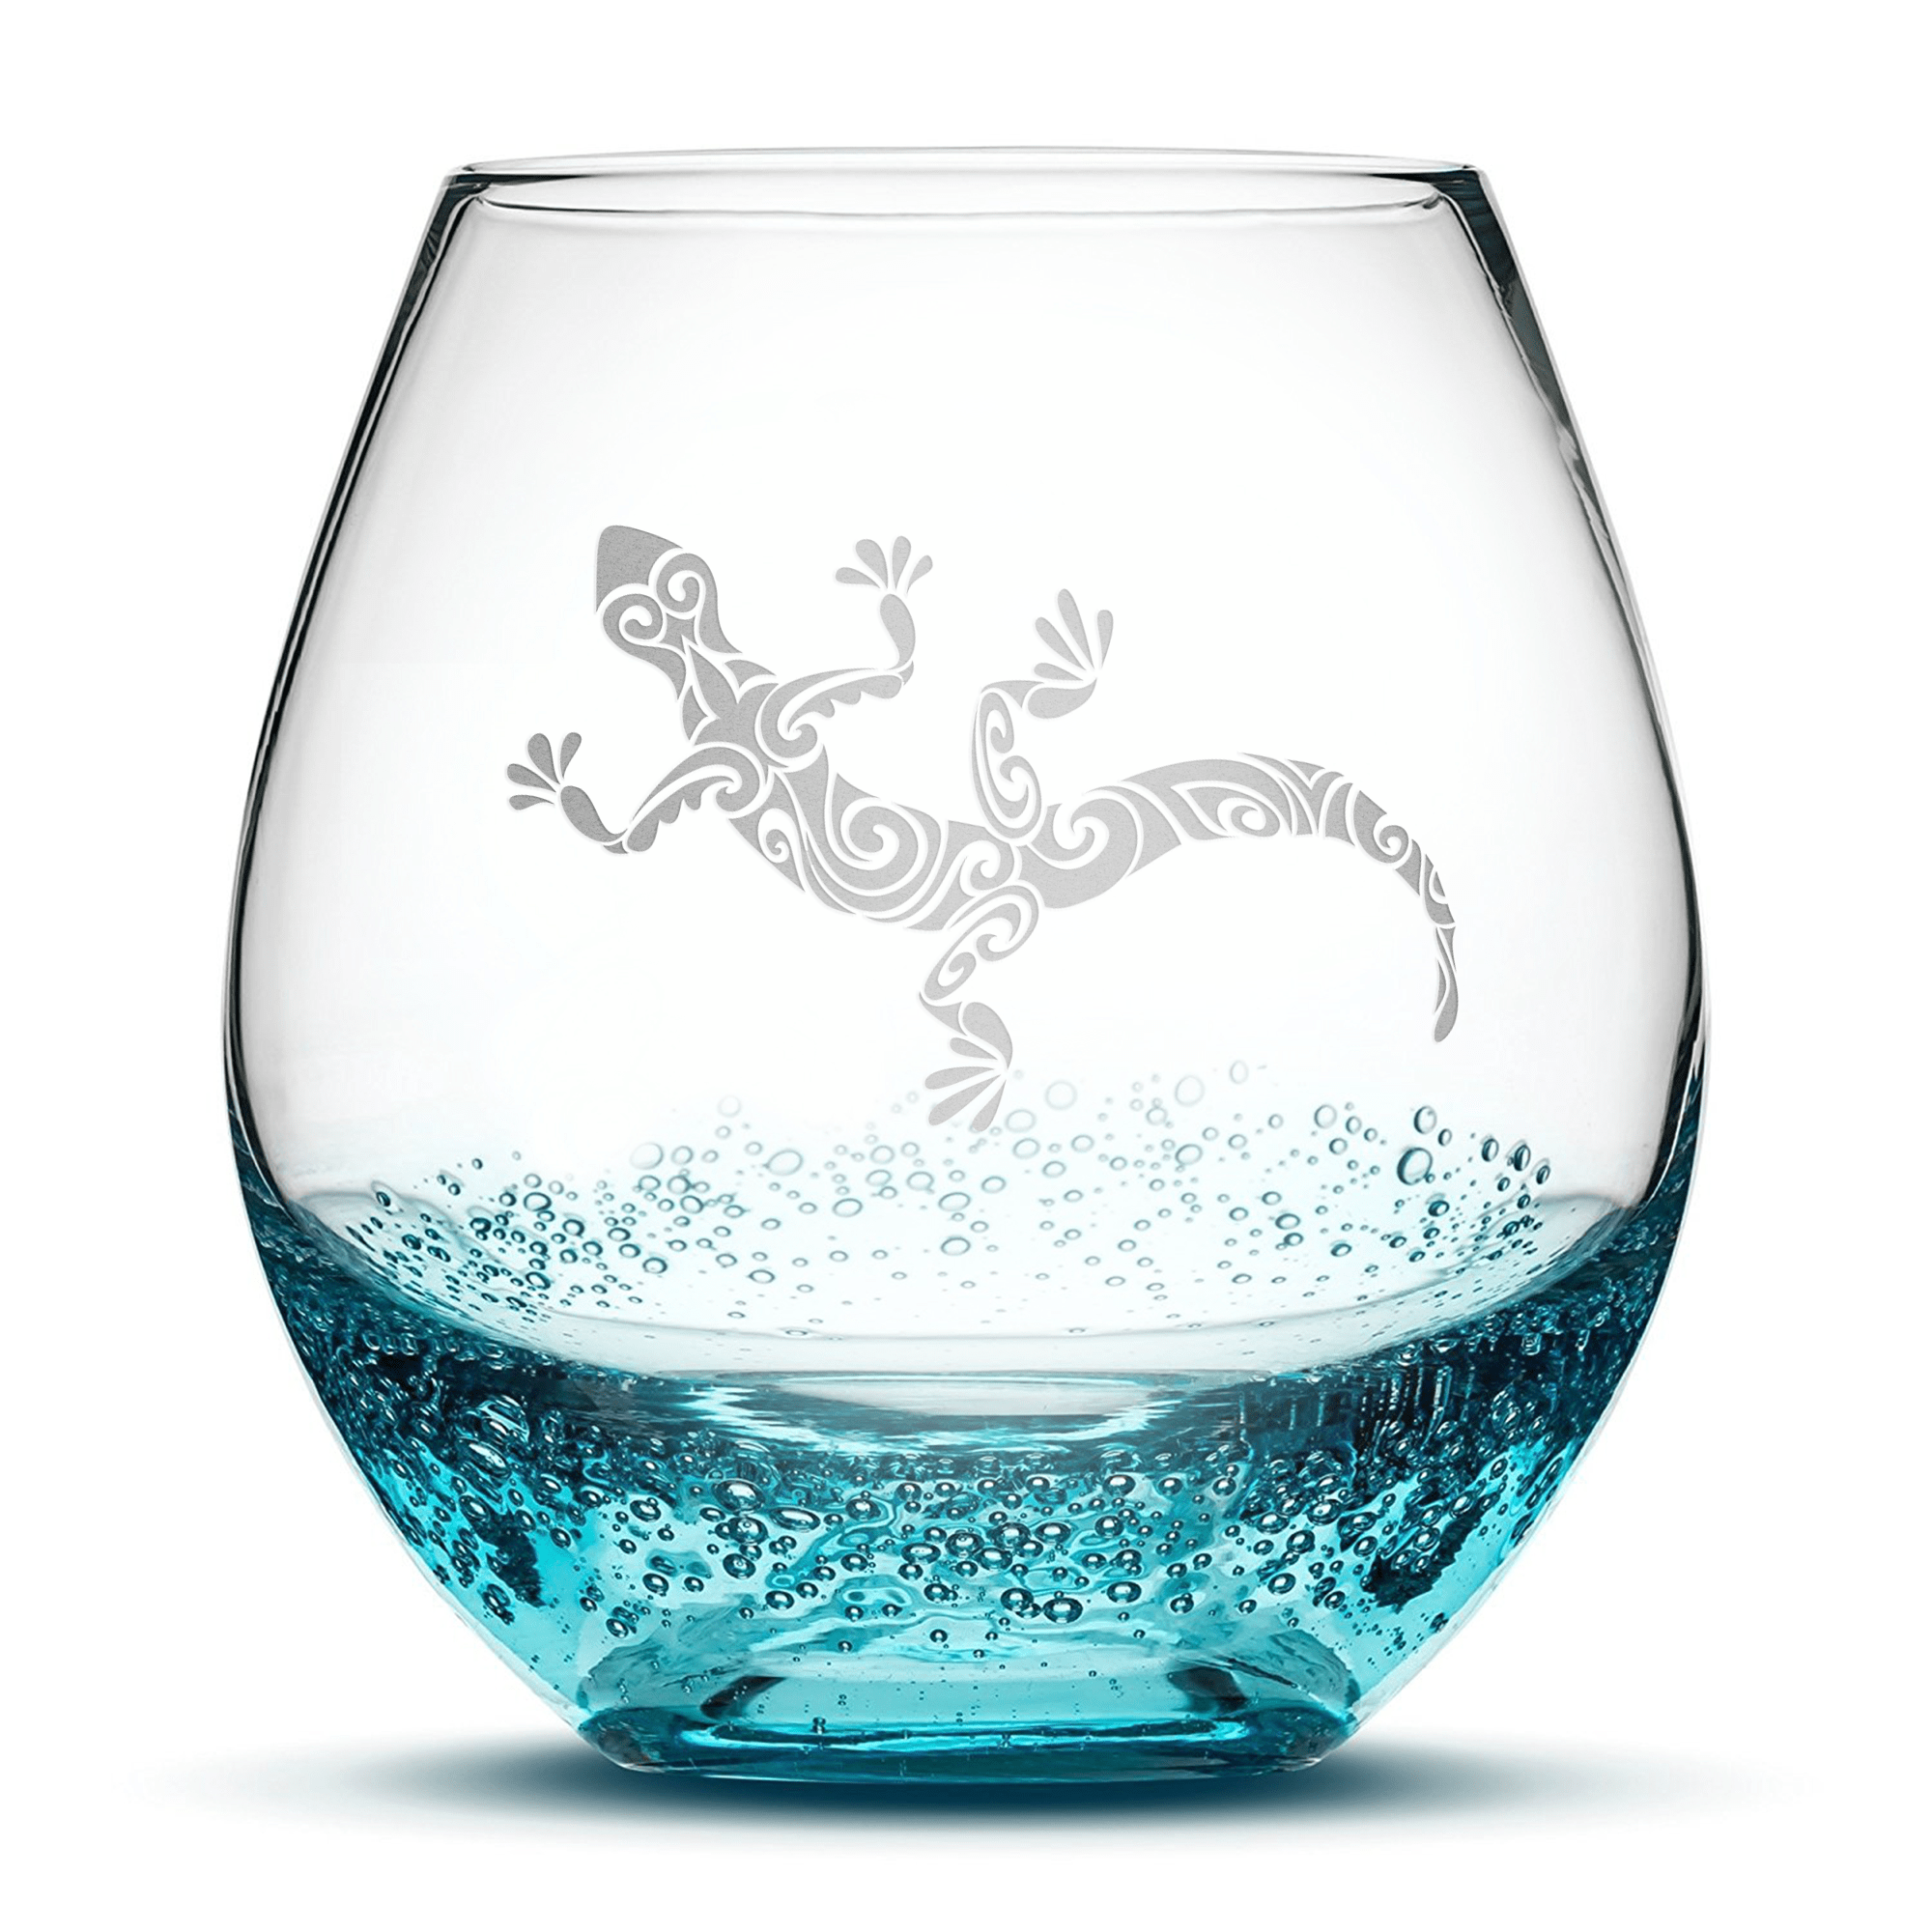 Bubble Wine Glass with Gecko Design, Hand Etched by Integrity Bottles